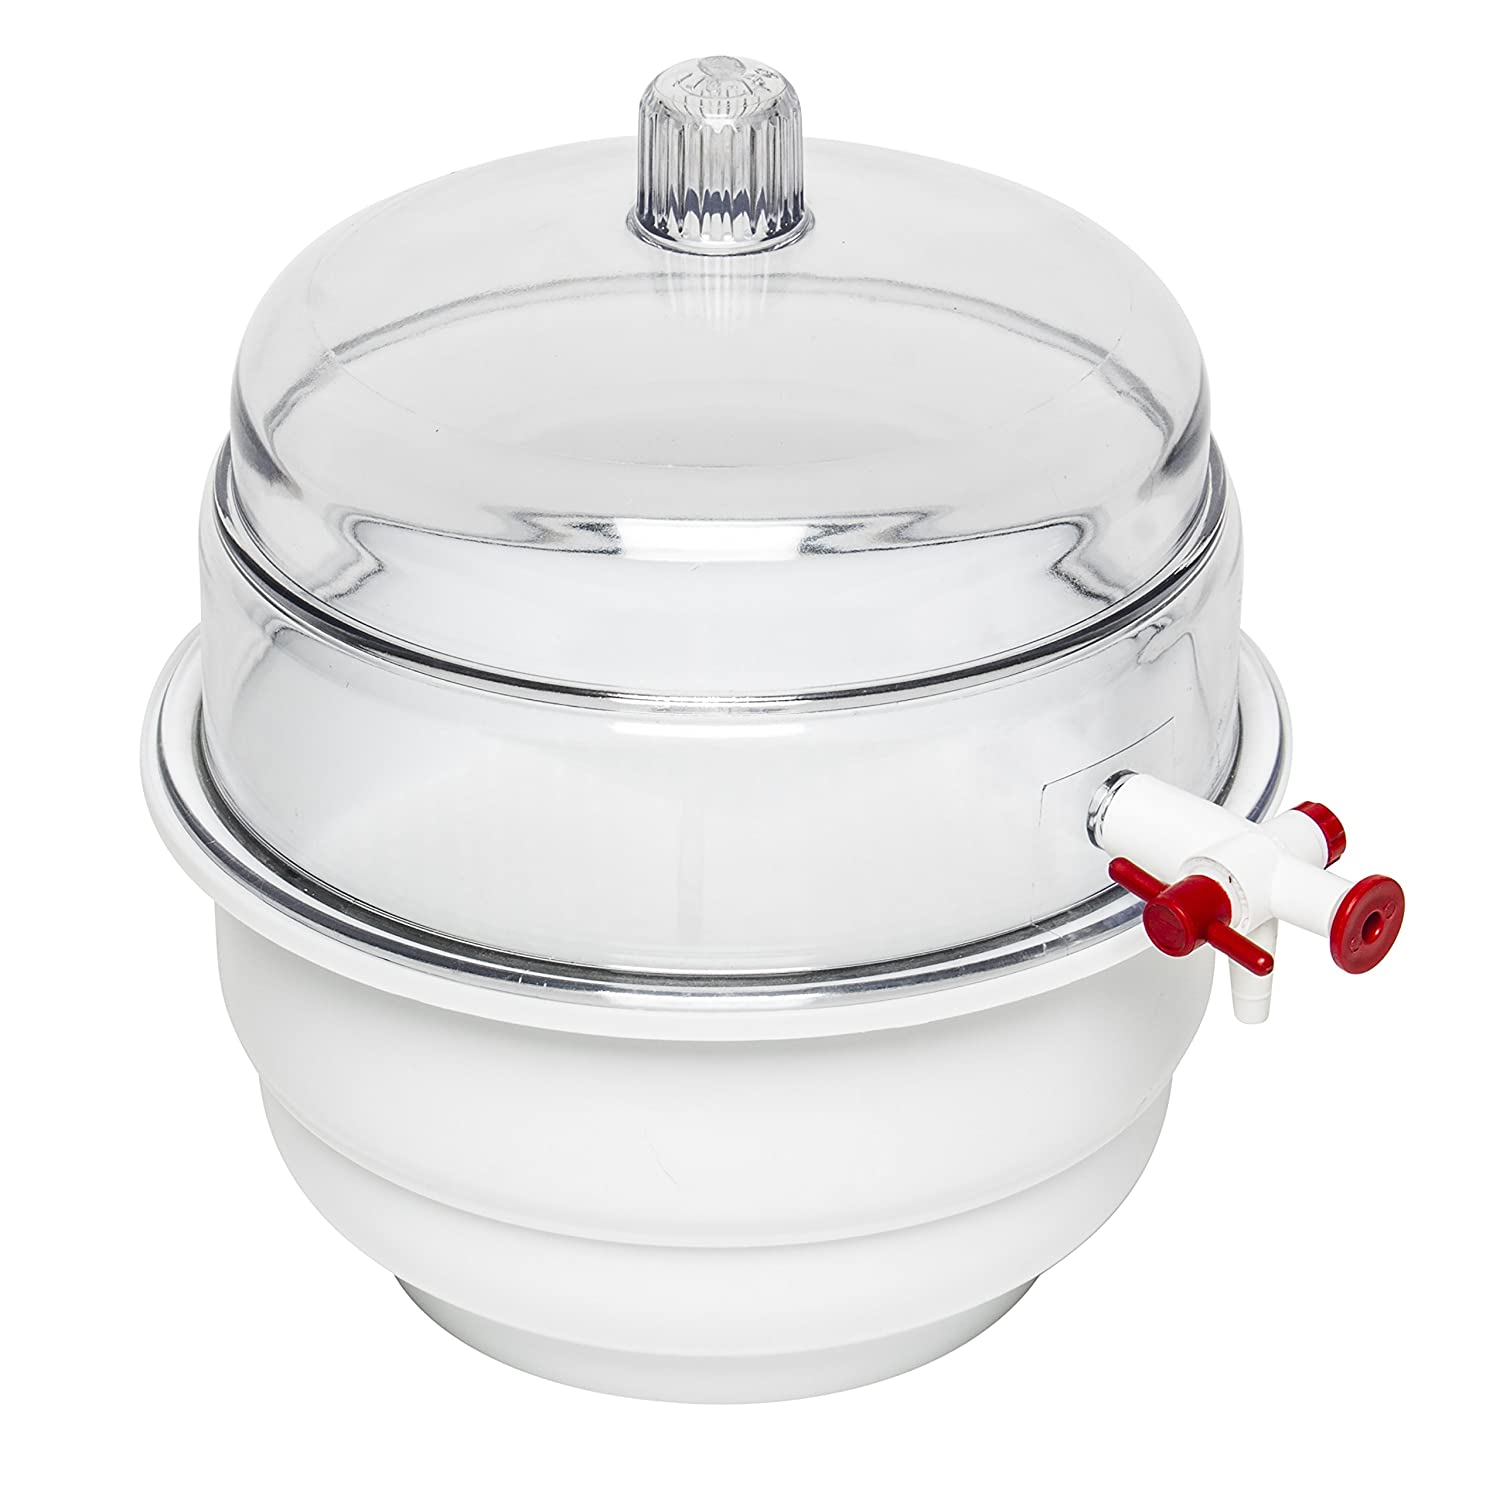 "Bel-Art""Space Saver"" Polycarbonate Vacuum Desiccator with White Polypropylene Bottom; 0.20 cu. ft. (F42020-0000) 819OHJkDTSL"